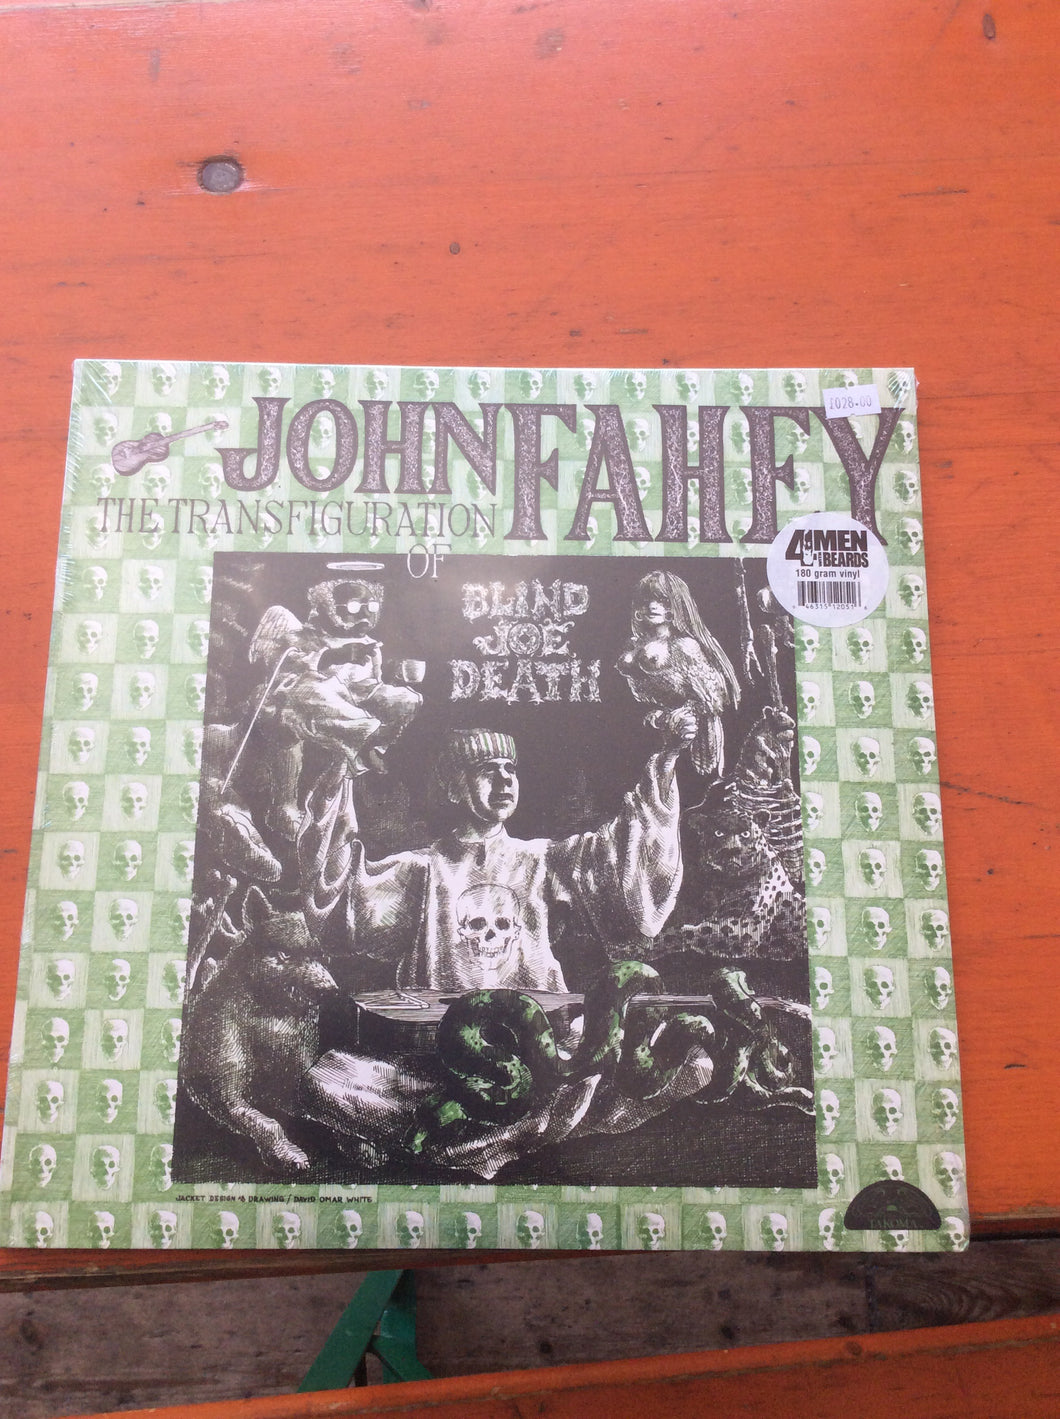 John Fahey - The Transfiguration Of Blind Joe Death